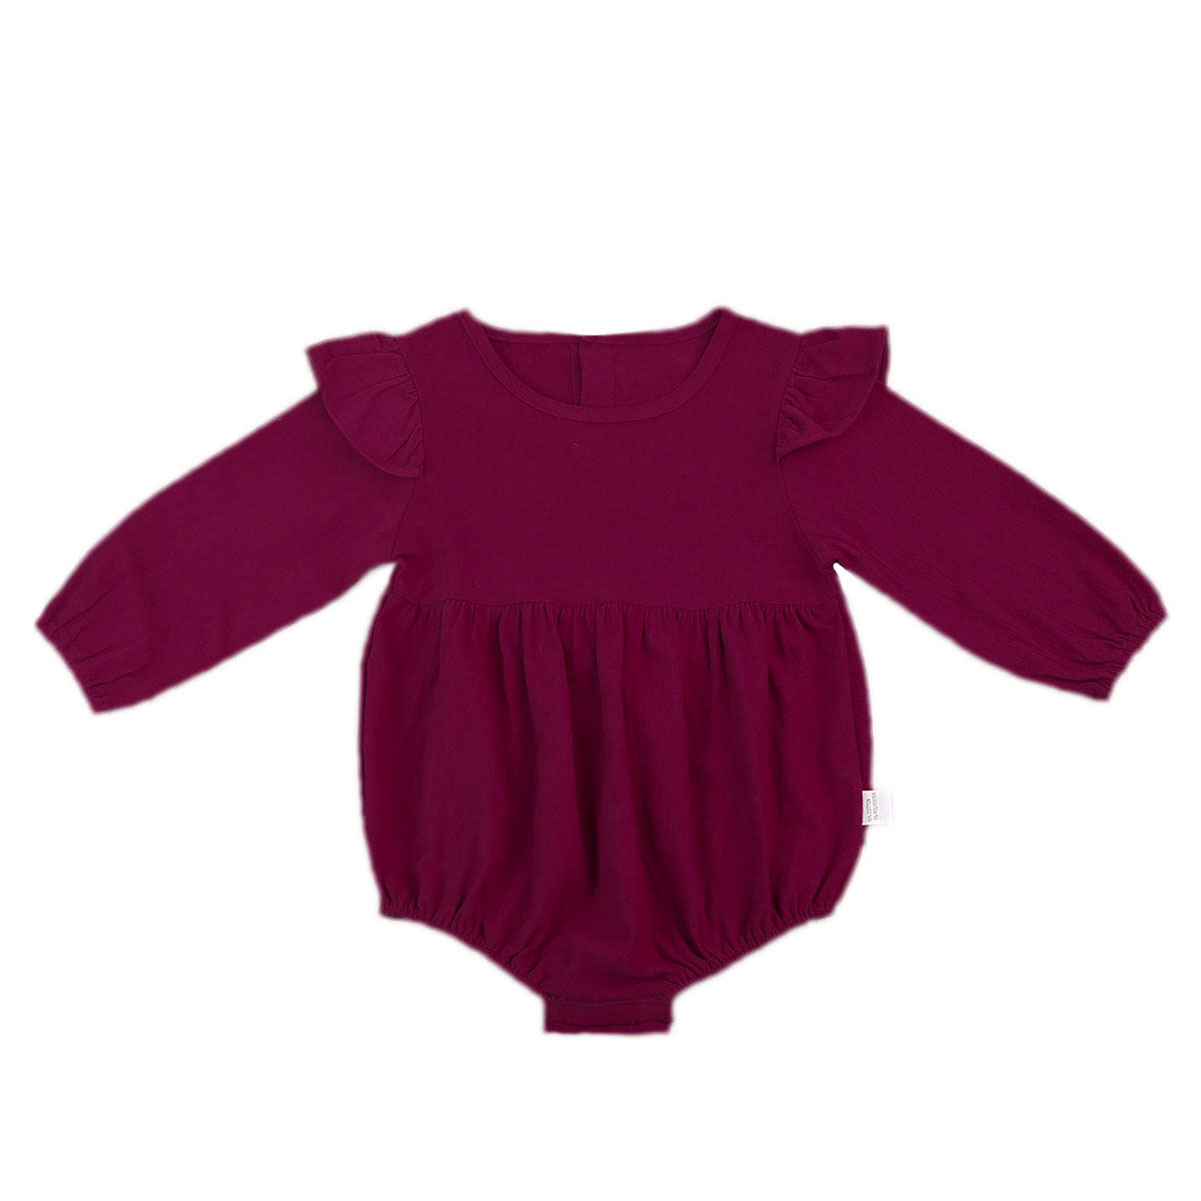 Cute-Infant-Baby-Girls-Clothing-Autumn-Long-Sleeve-Cotton-Romper-Toddler-Kids-Playsuit-Outfits-1